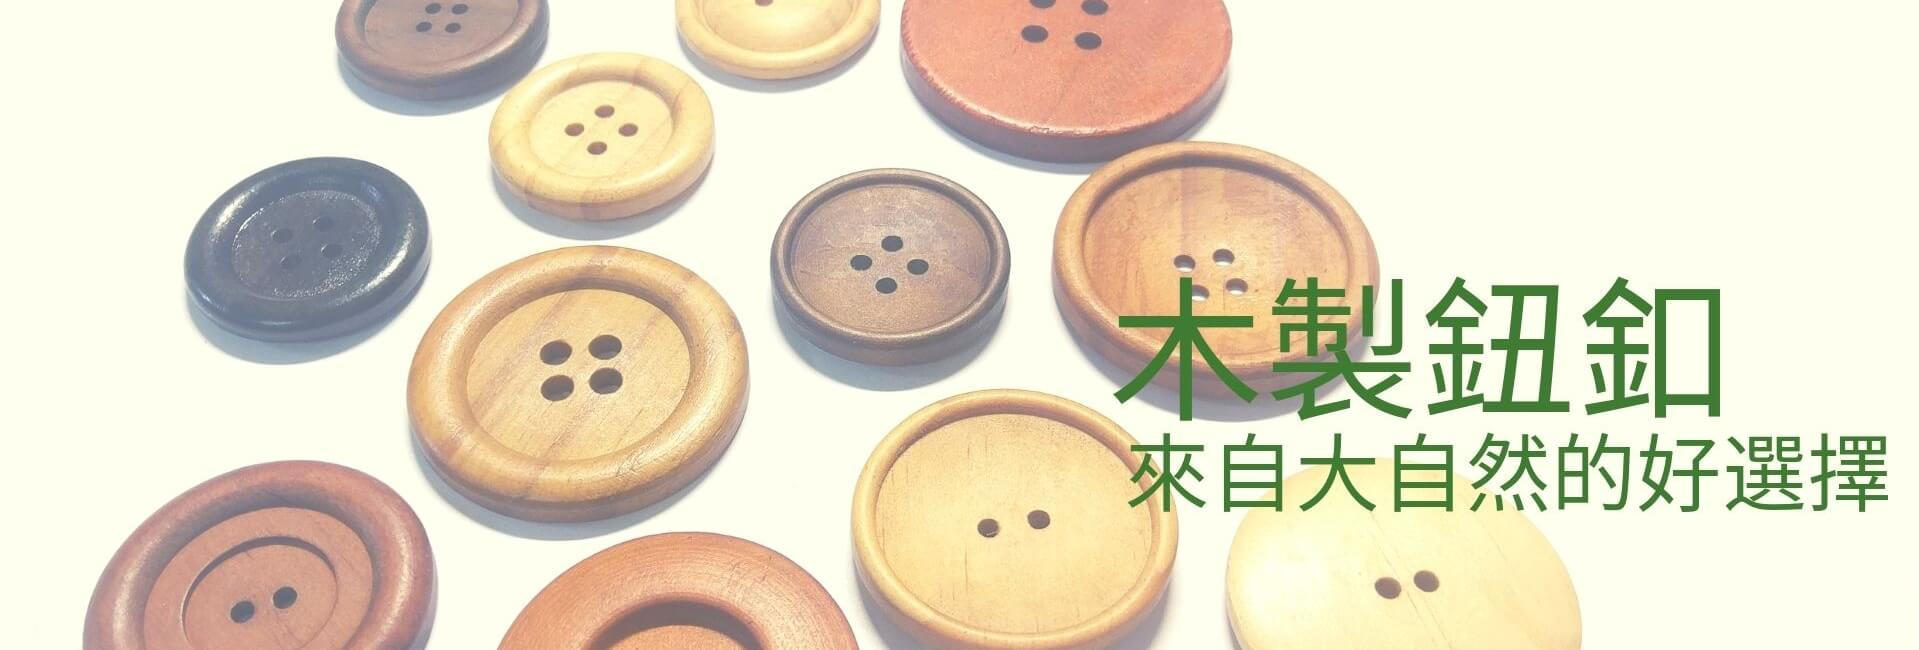 2019_wood button_banner_cn_1920x650